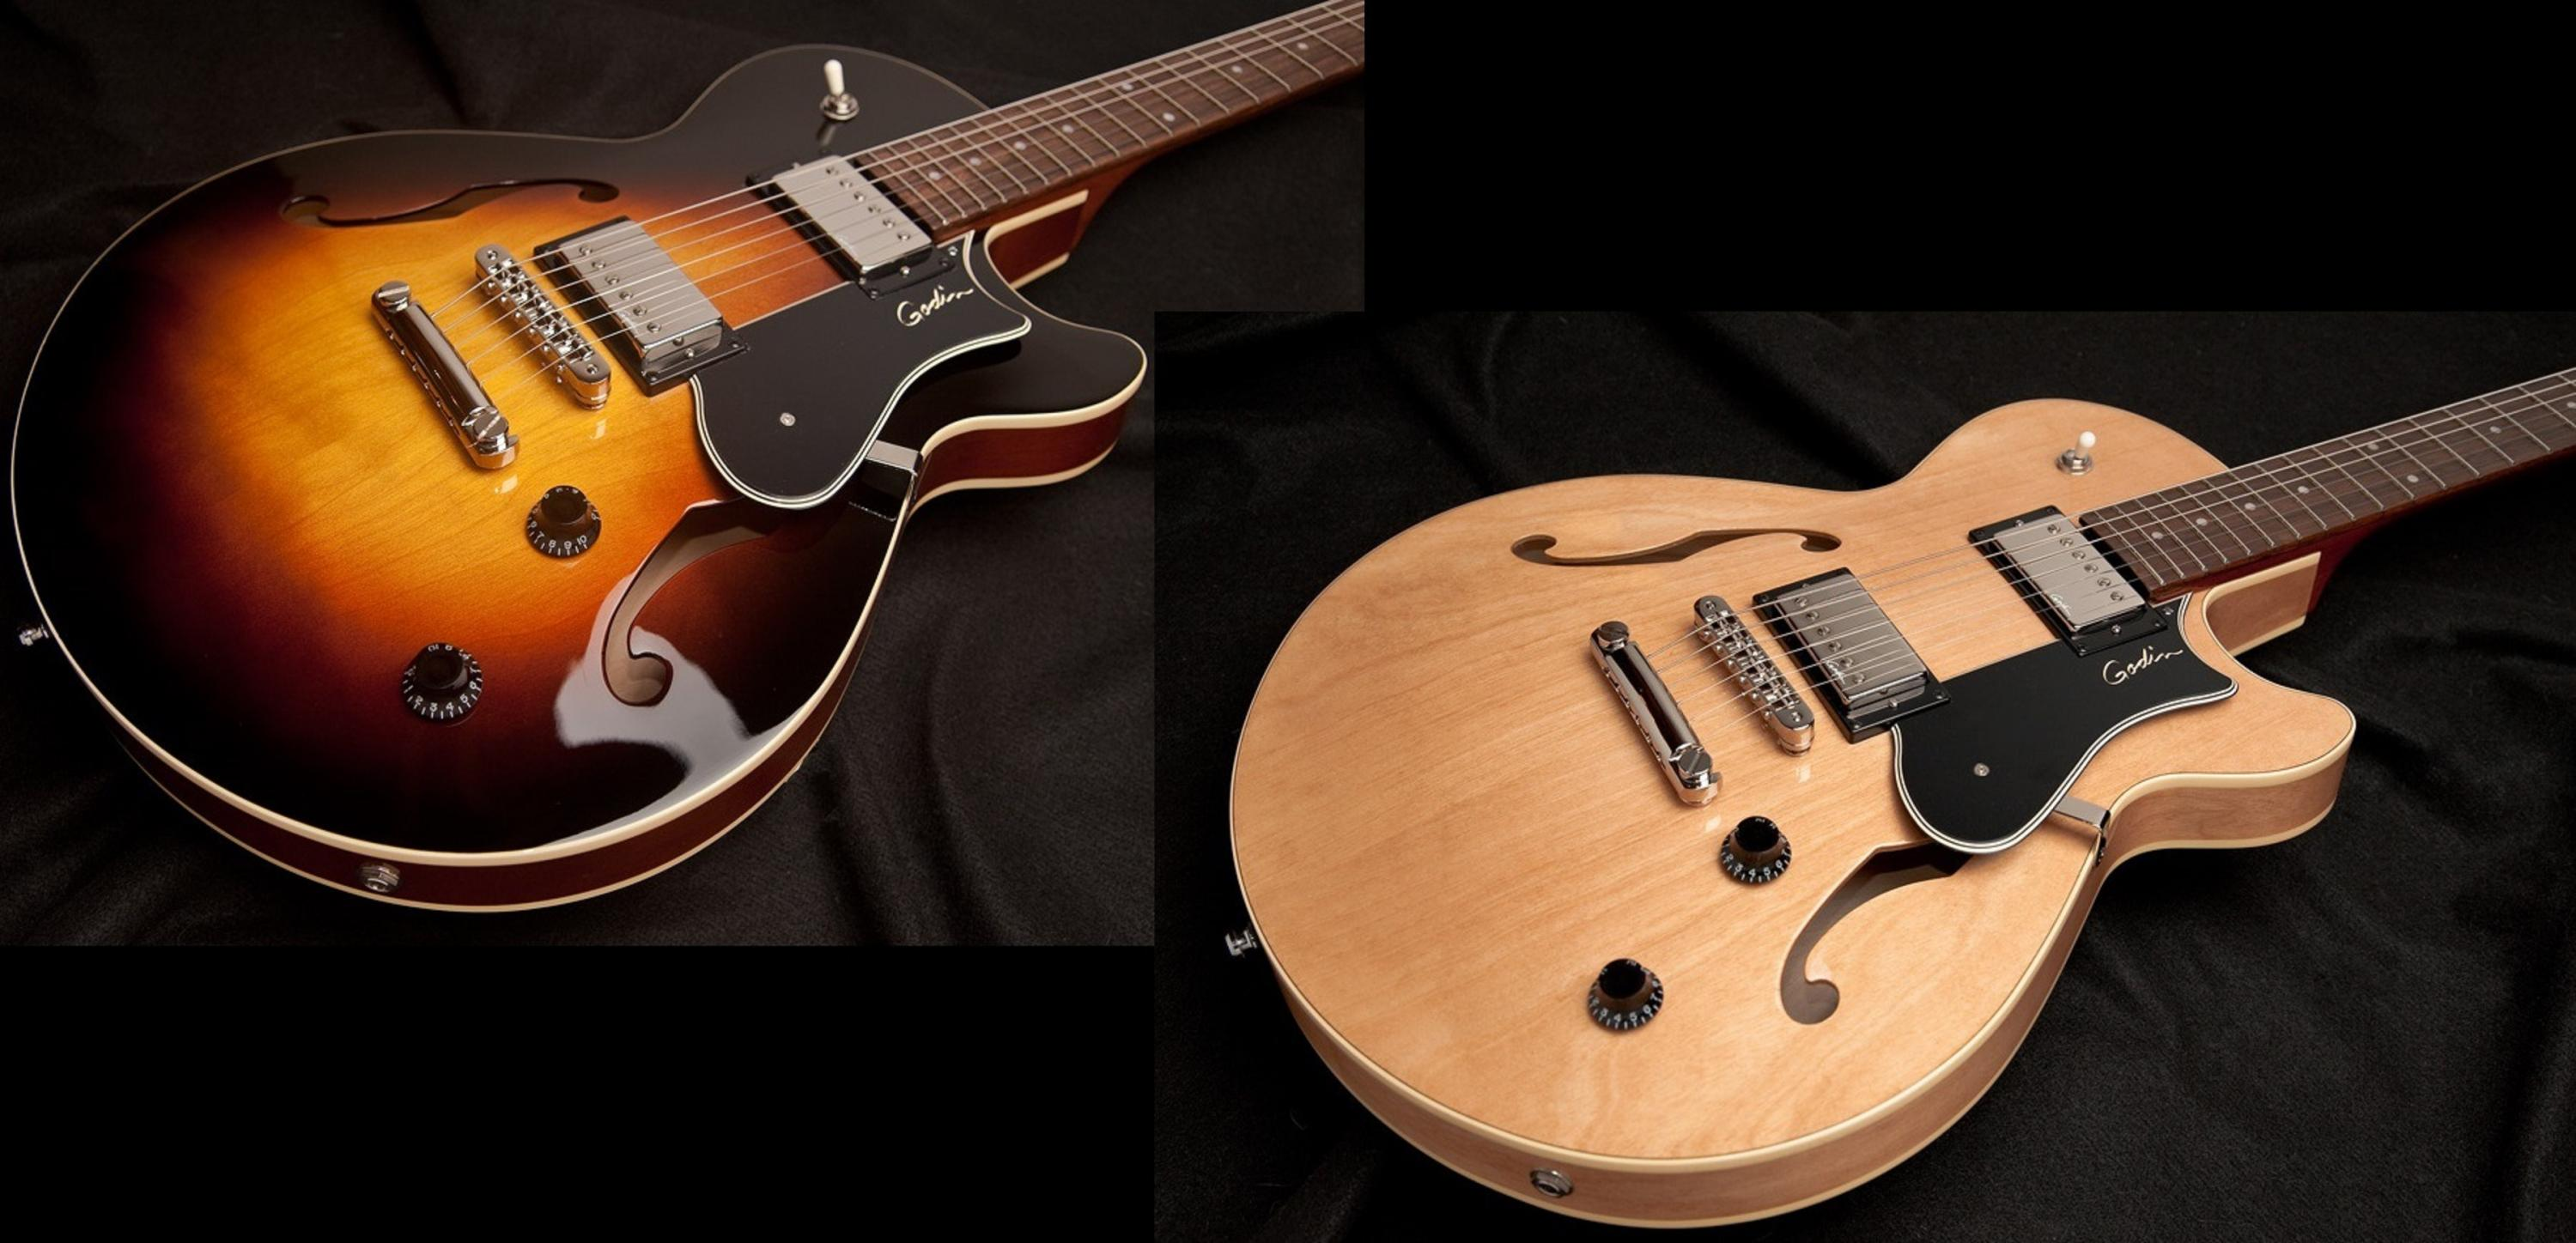 Thinking about upgrading my Montreal Premiere ... maybe-godin-montreal-premiere-x-2-jpg